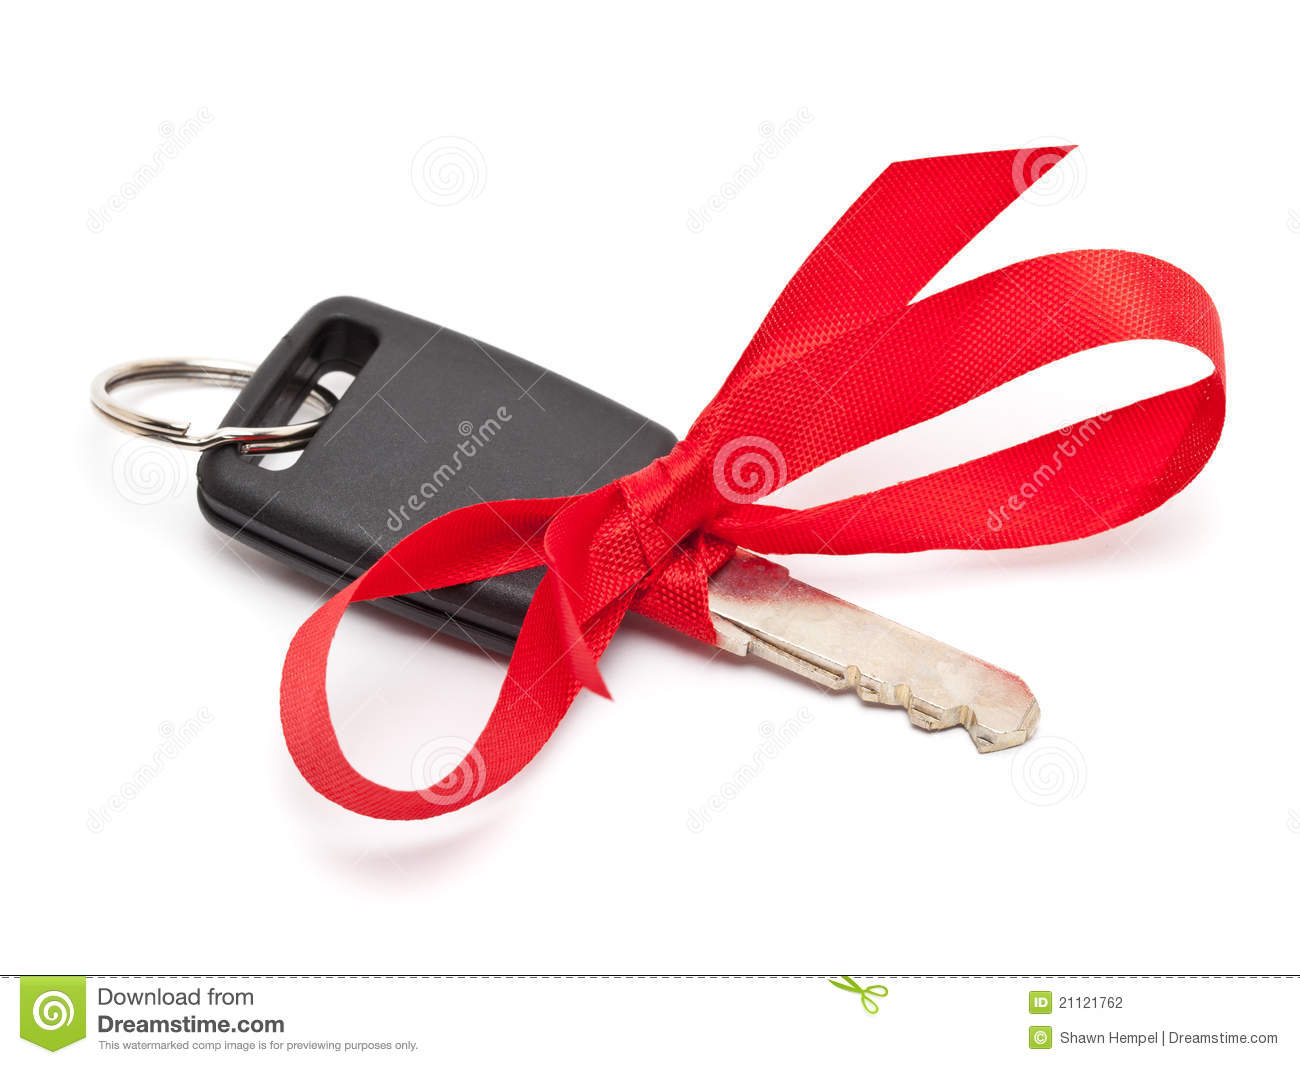 Expensive Car For Sale Or Gift Royalty Free Stock Image: Car Key Present Stock Photo. Image Of Sell, Sale